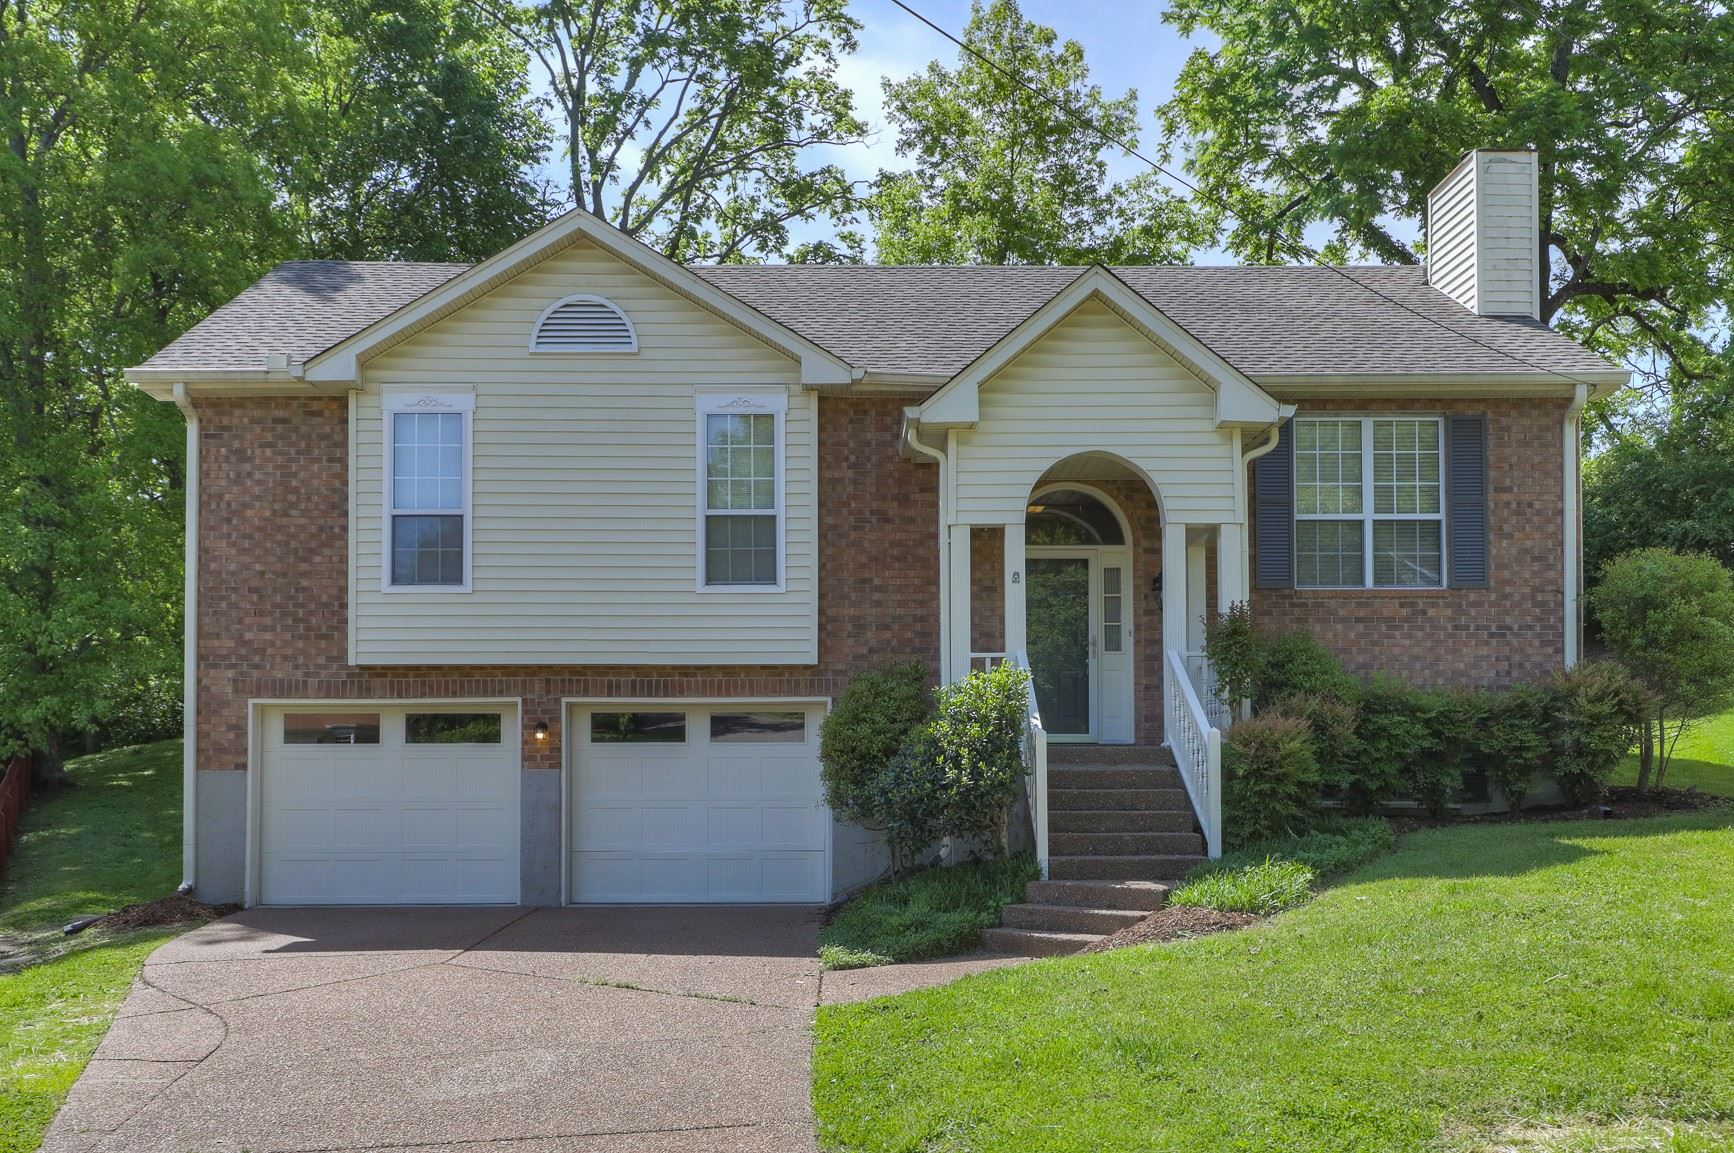 903 Retriever Pl, Antioch, TN 37013 - MLS#: 2252917